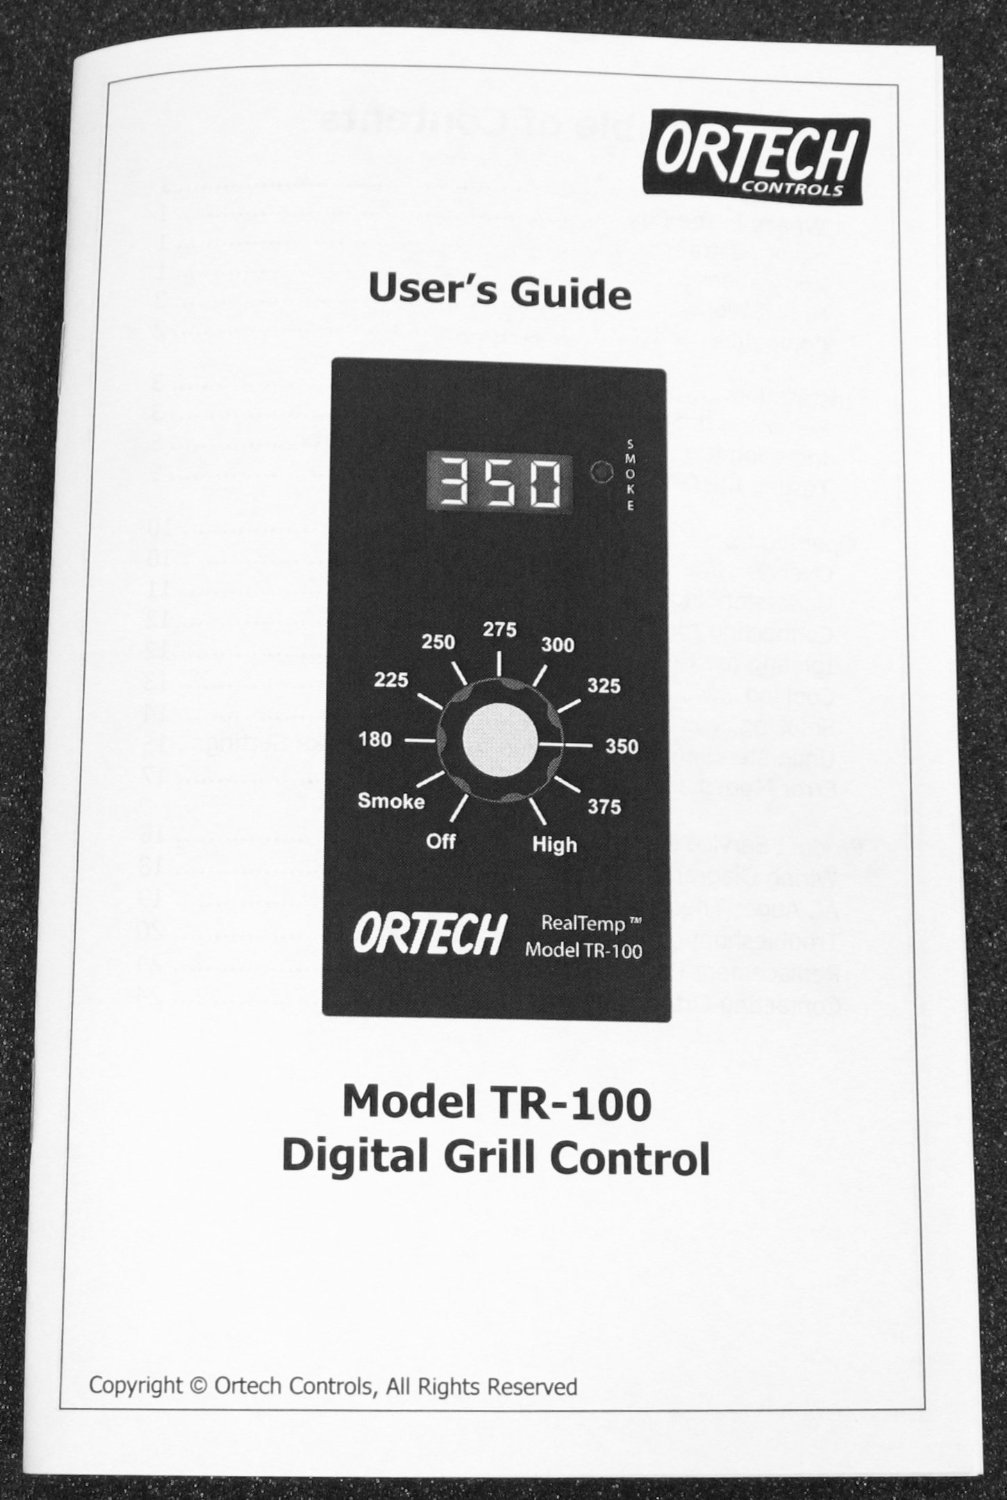 Digital Thermostat Kit for Traeger Pellet Grills by Ortech by Ortech Controls